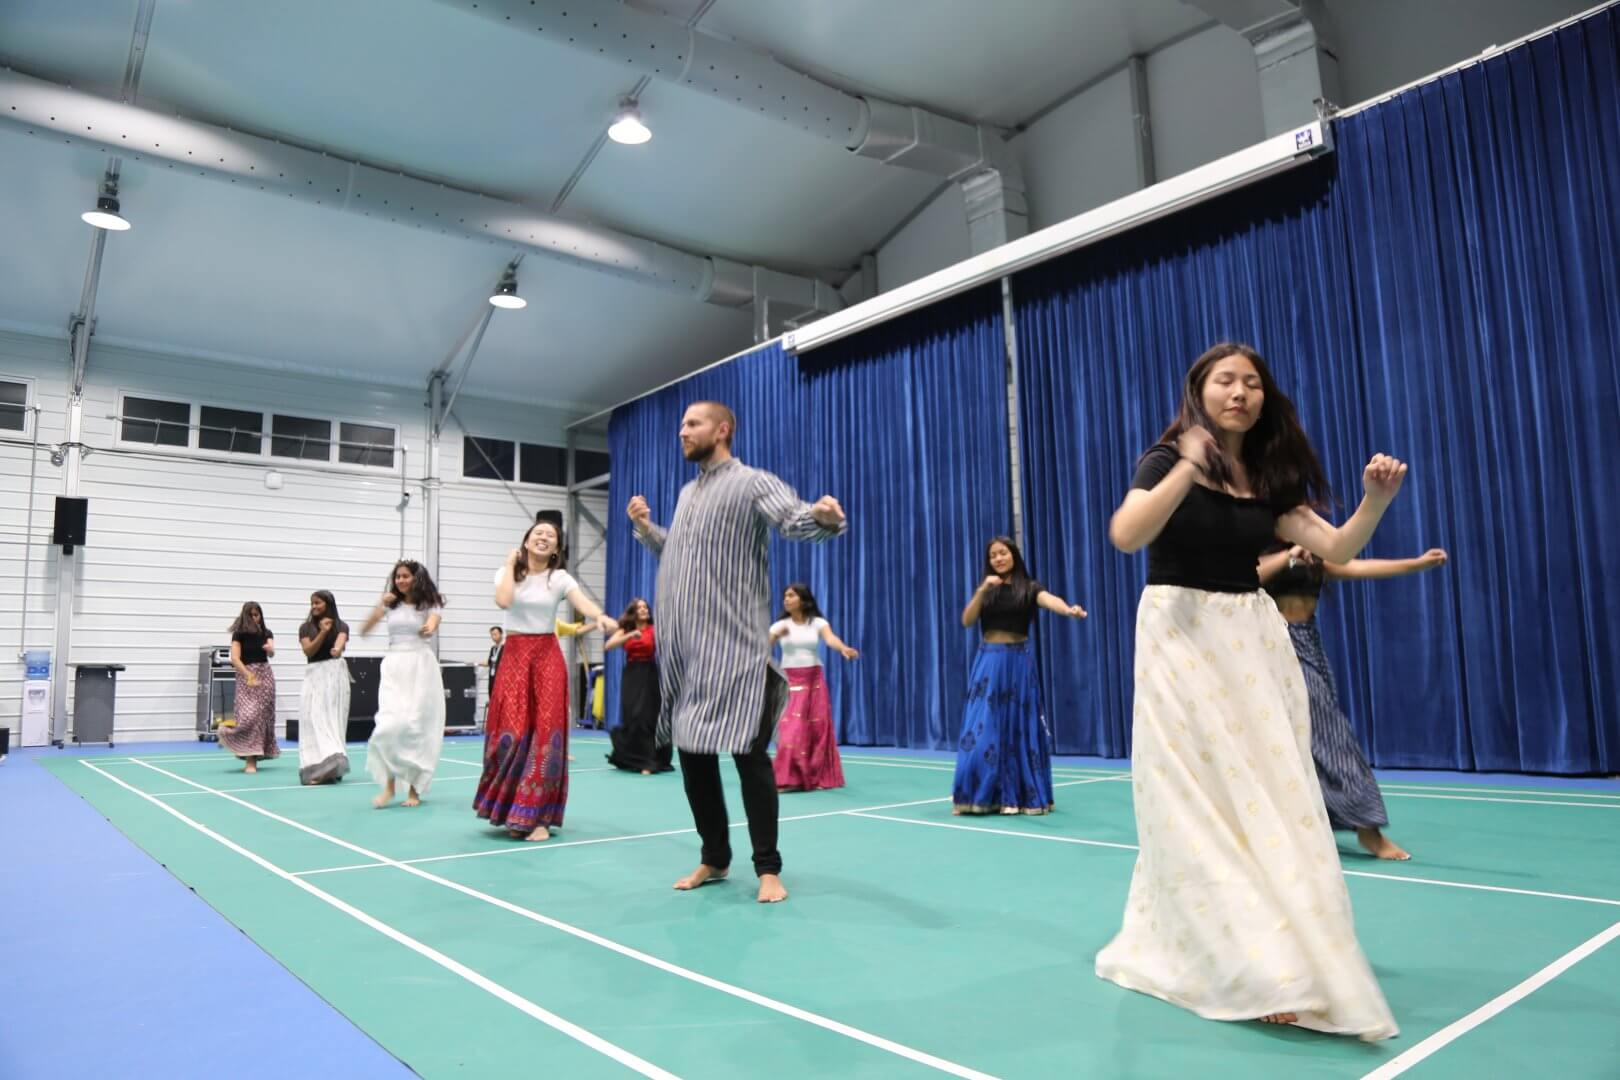 Cultural offering by Woodstock College